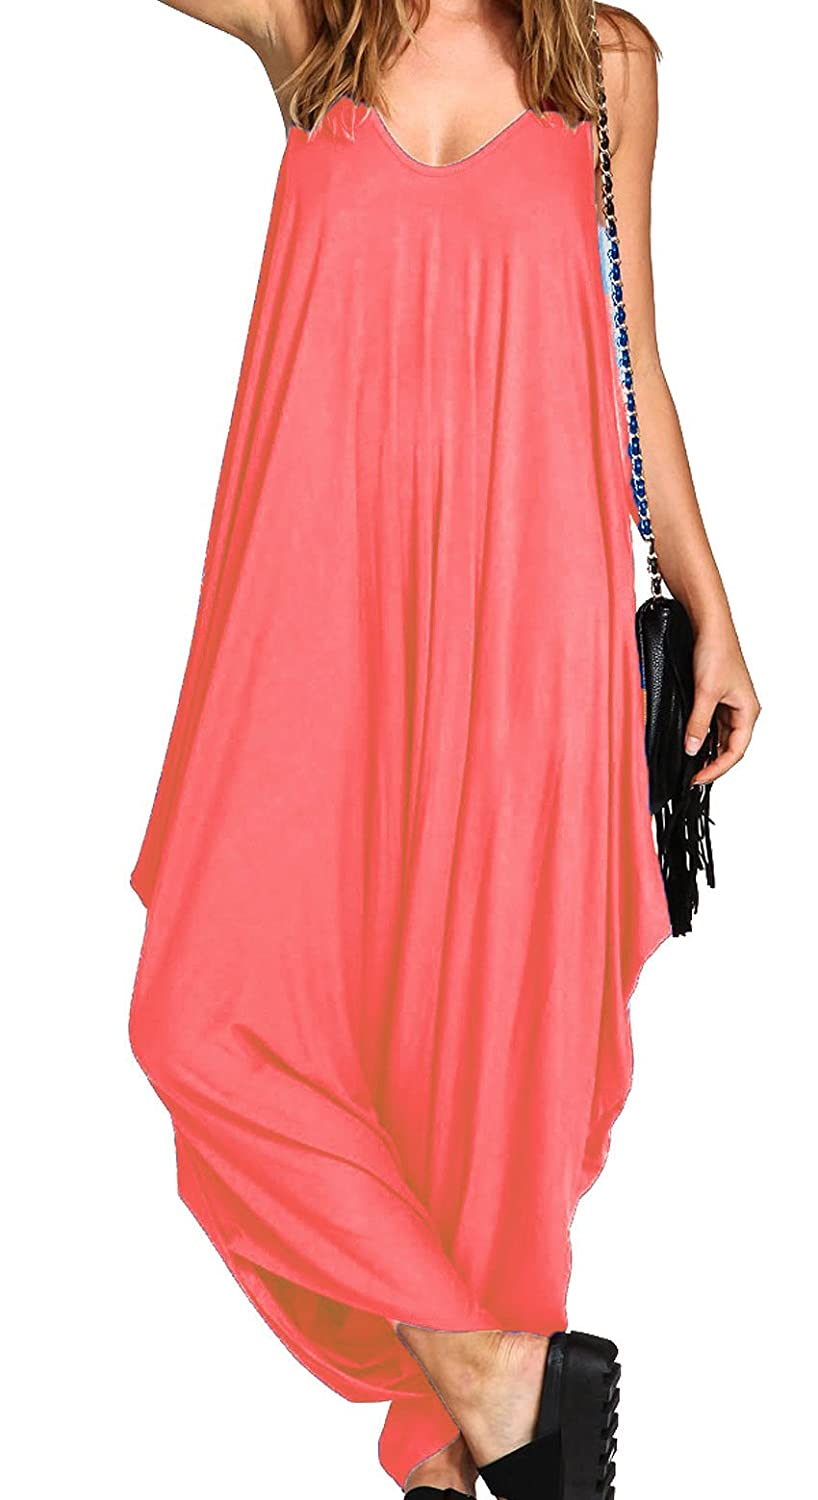 b3a4589305 Ladies Baggy Harem Jumpsuit Romper Sleeveless All in One V-Neck Cami  Playsuit